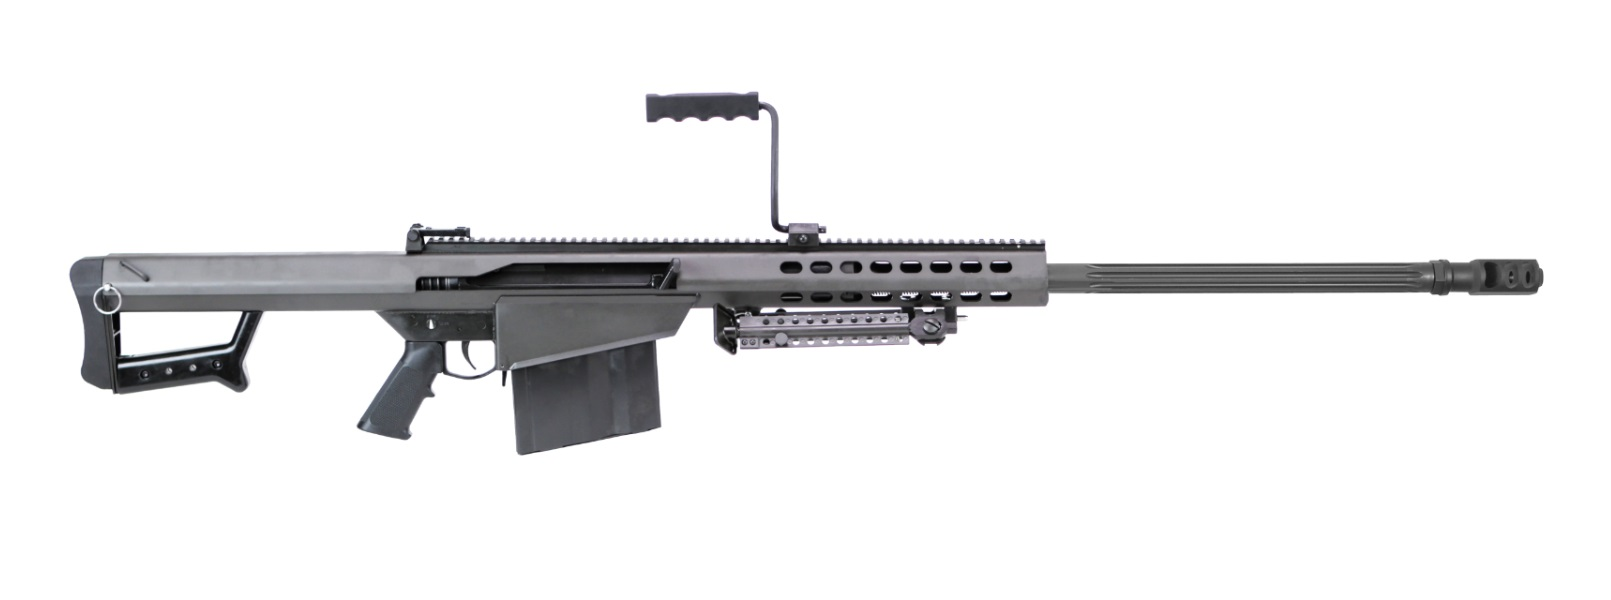 Barrett Firearms Model 82A1 416 Barrett